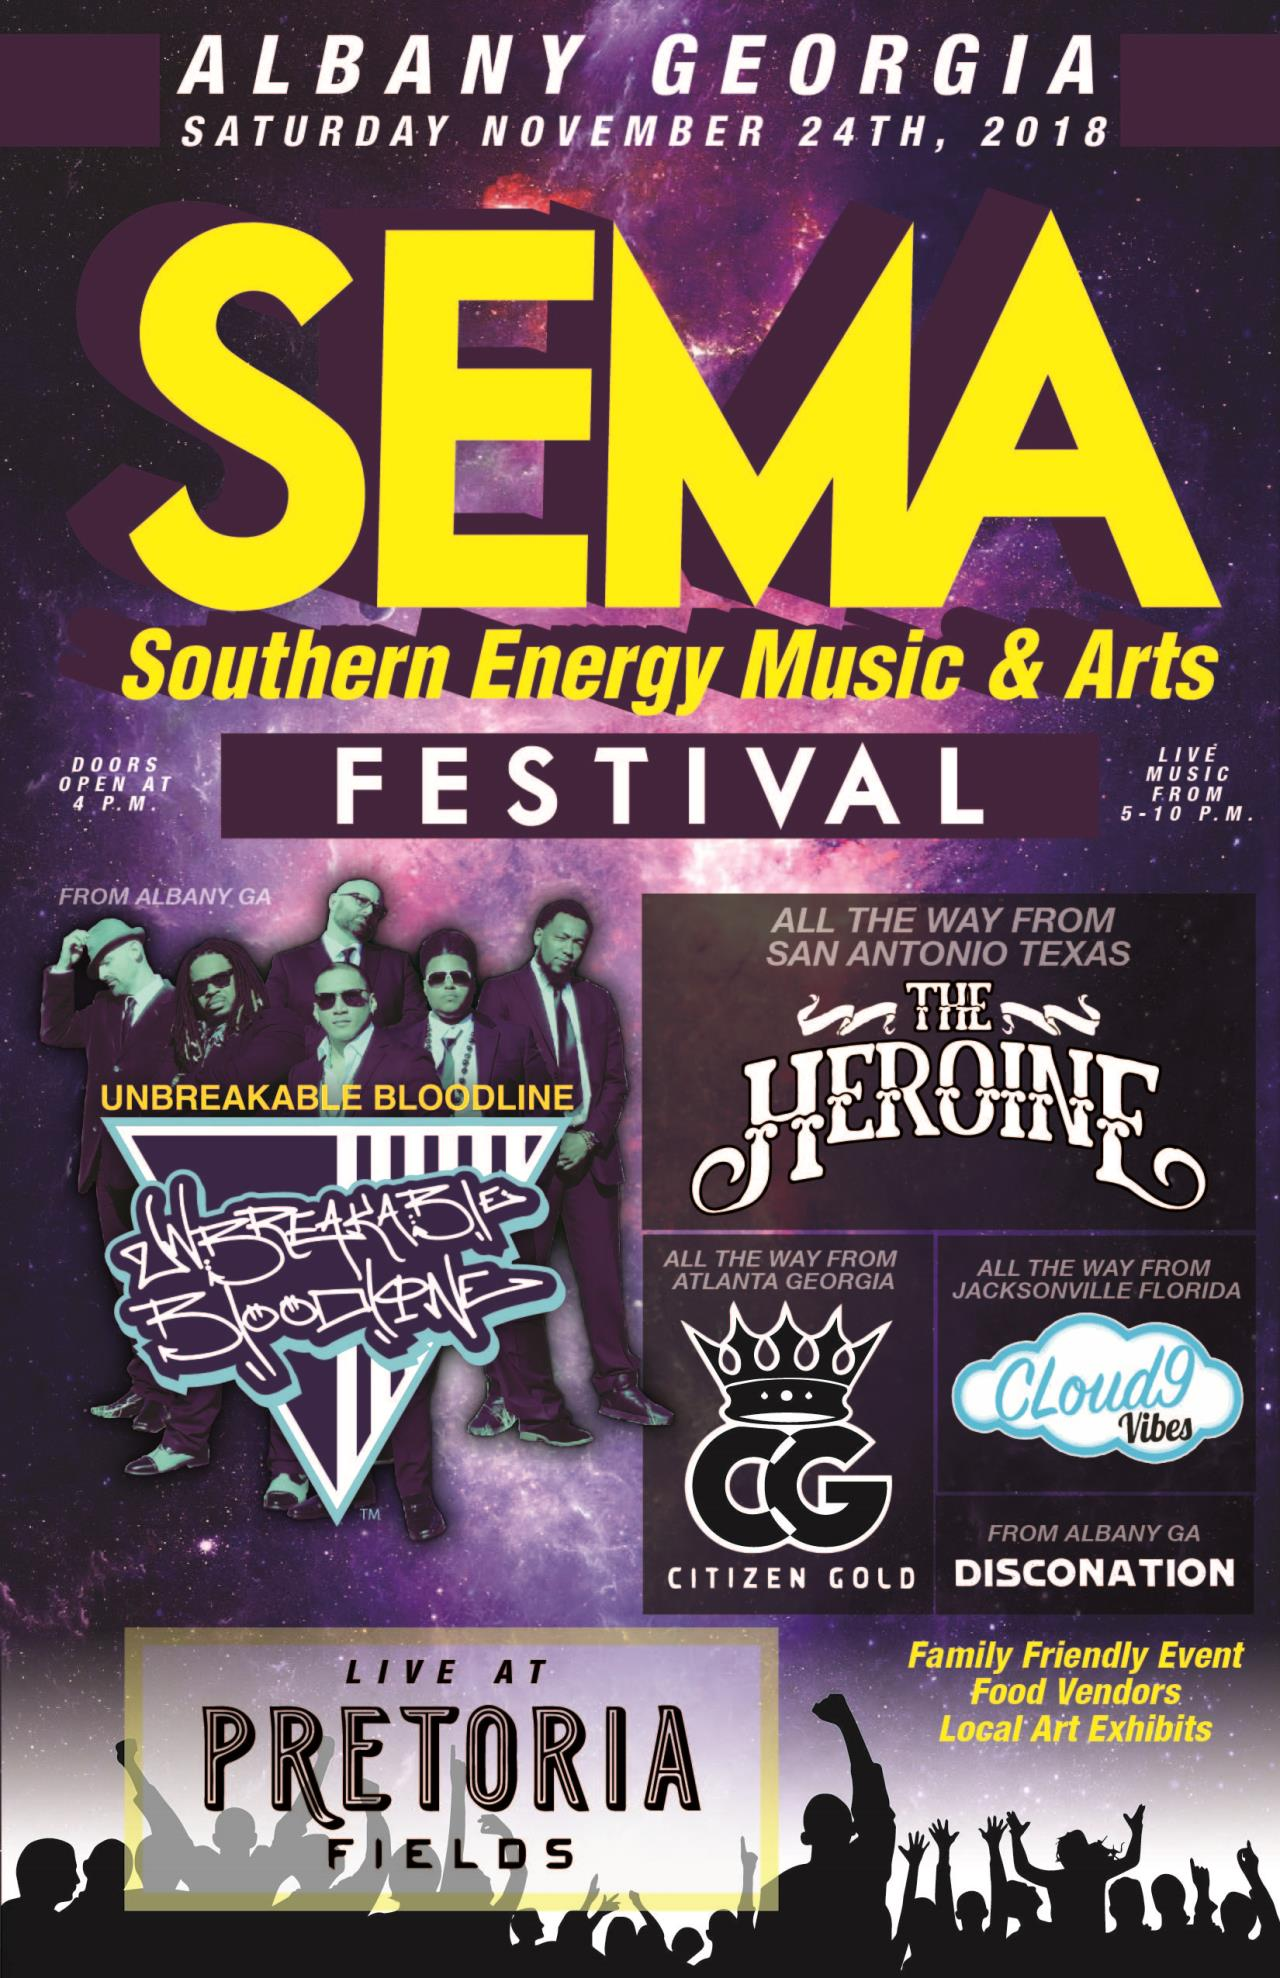 Southern Energy Music & Arts Festival   Calendar Month View   City